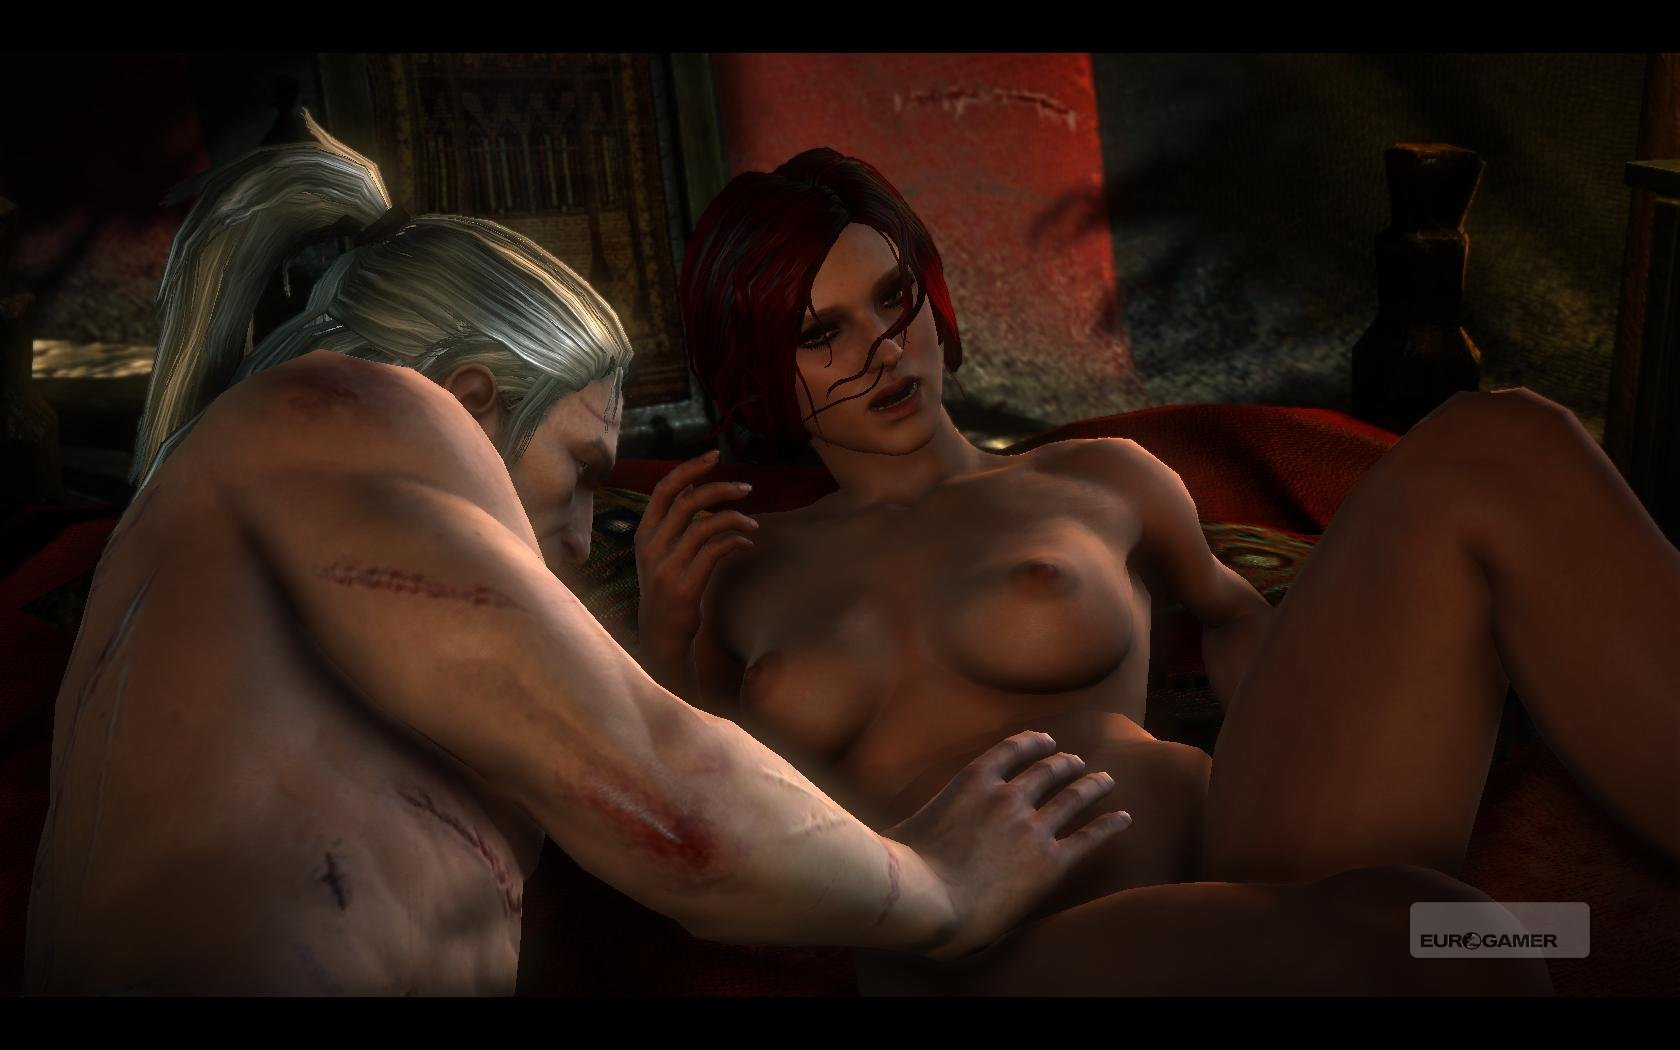 Witcher sex video sexy fantasy actresses